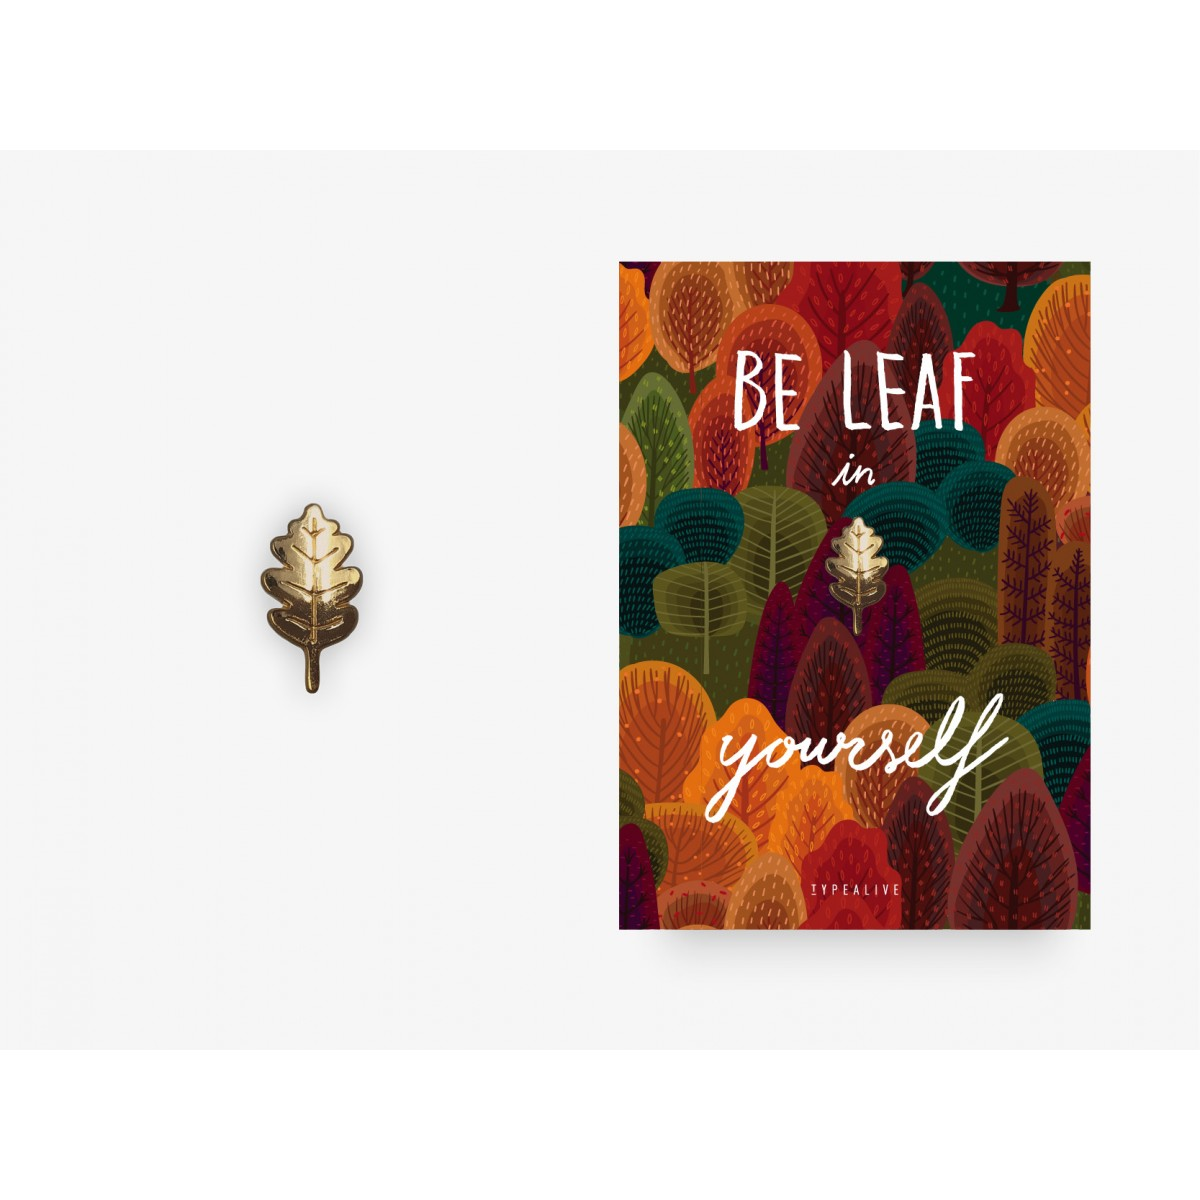 typealive / Pin / Be Leaf